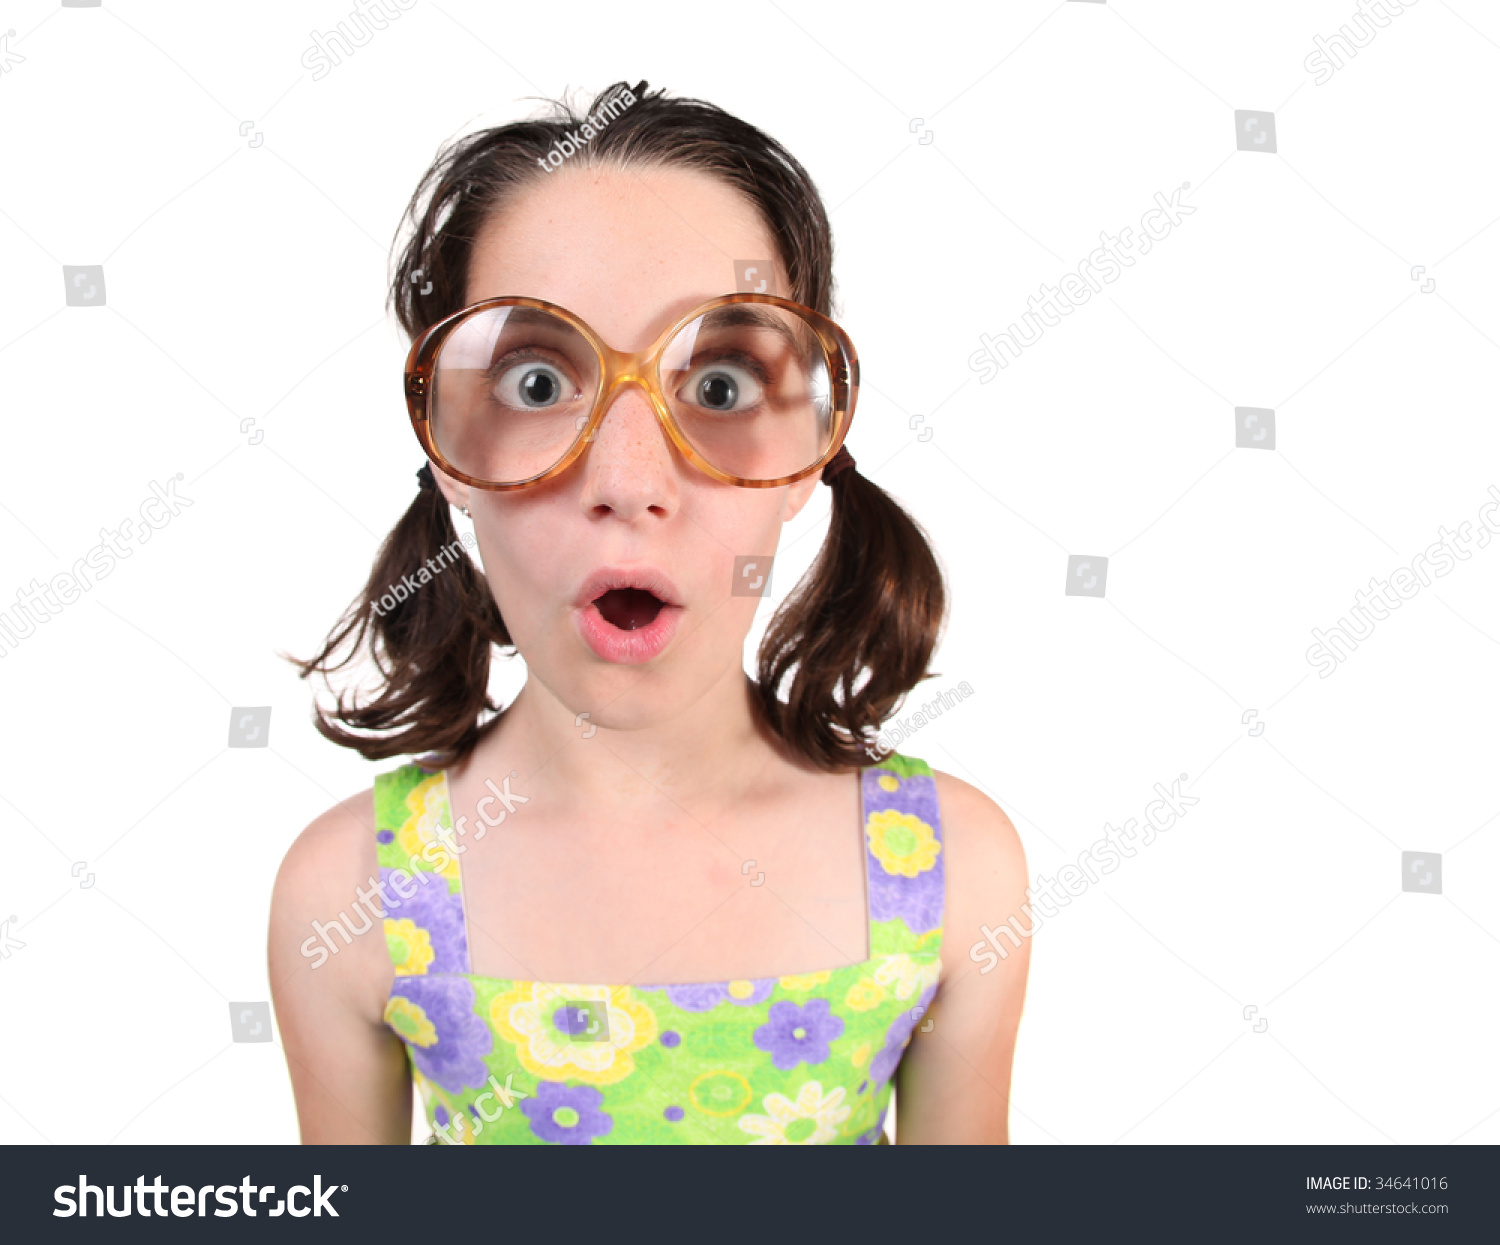 Nerdy Girl Stock Photos, Royalty-Free Images & Vectors - Shutterstock